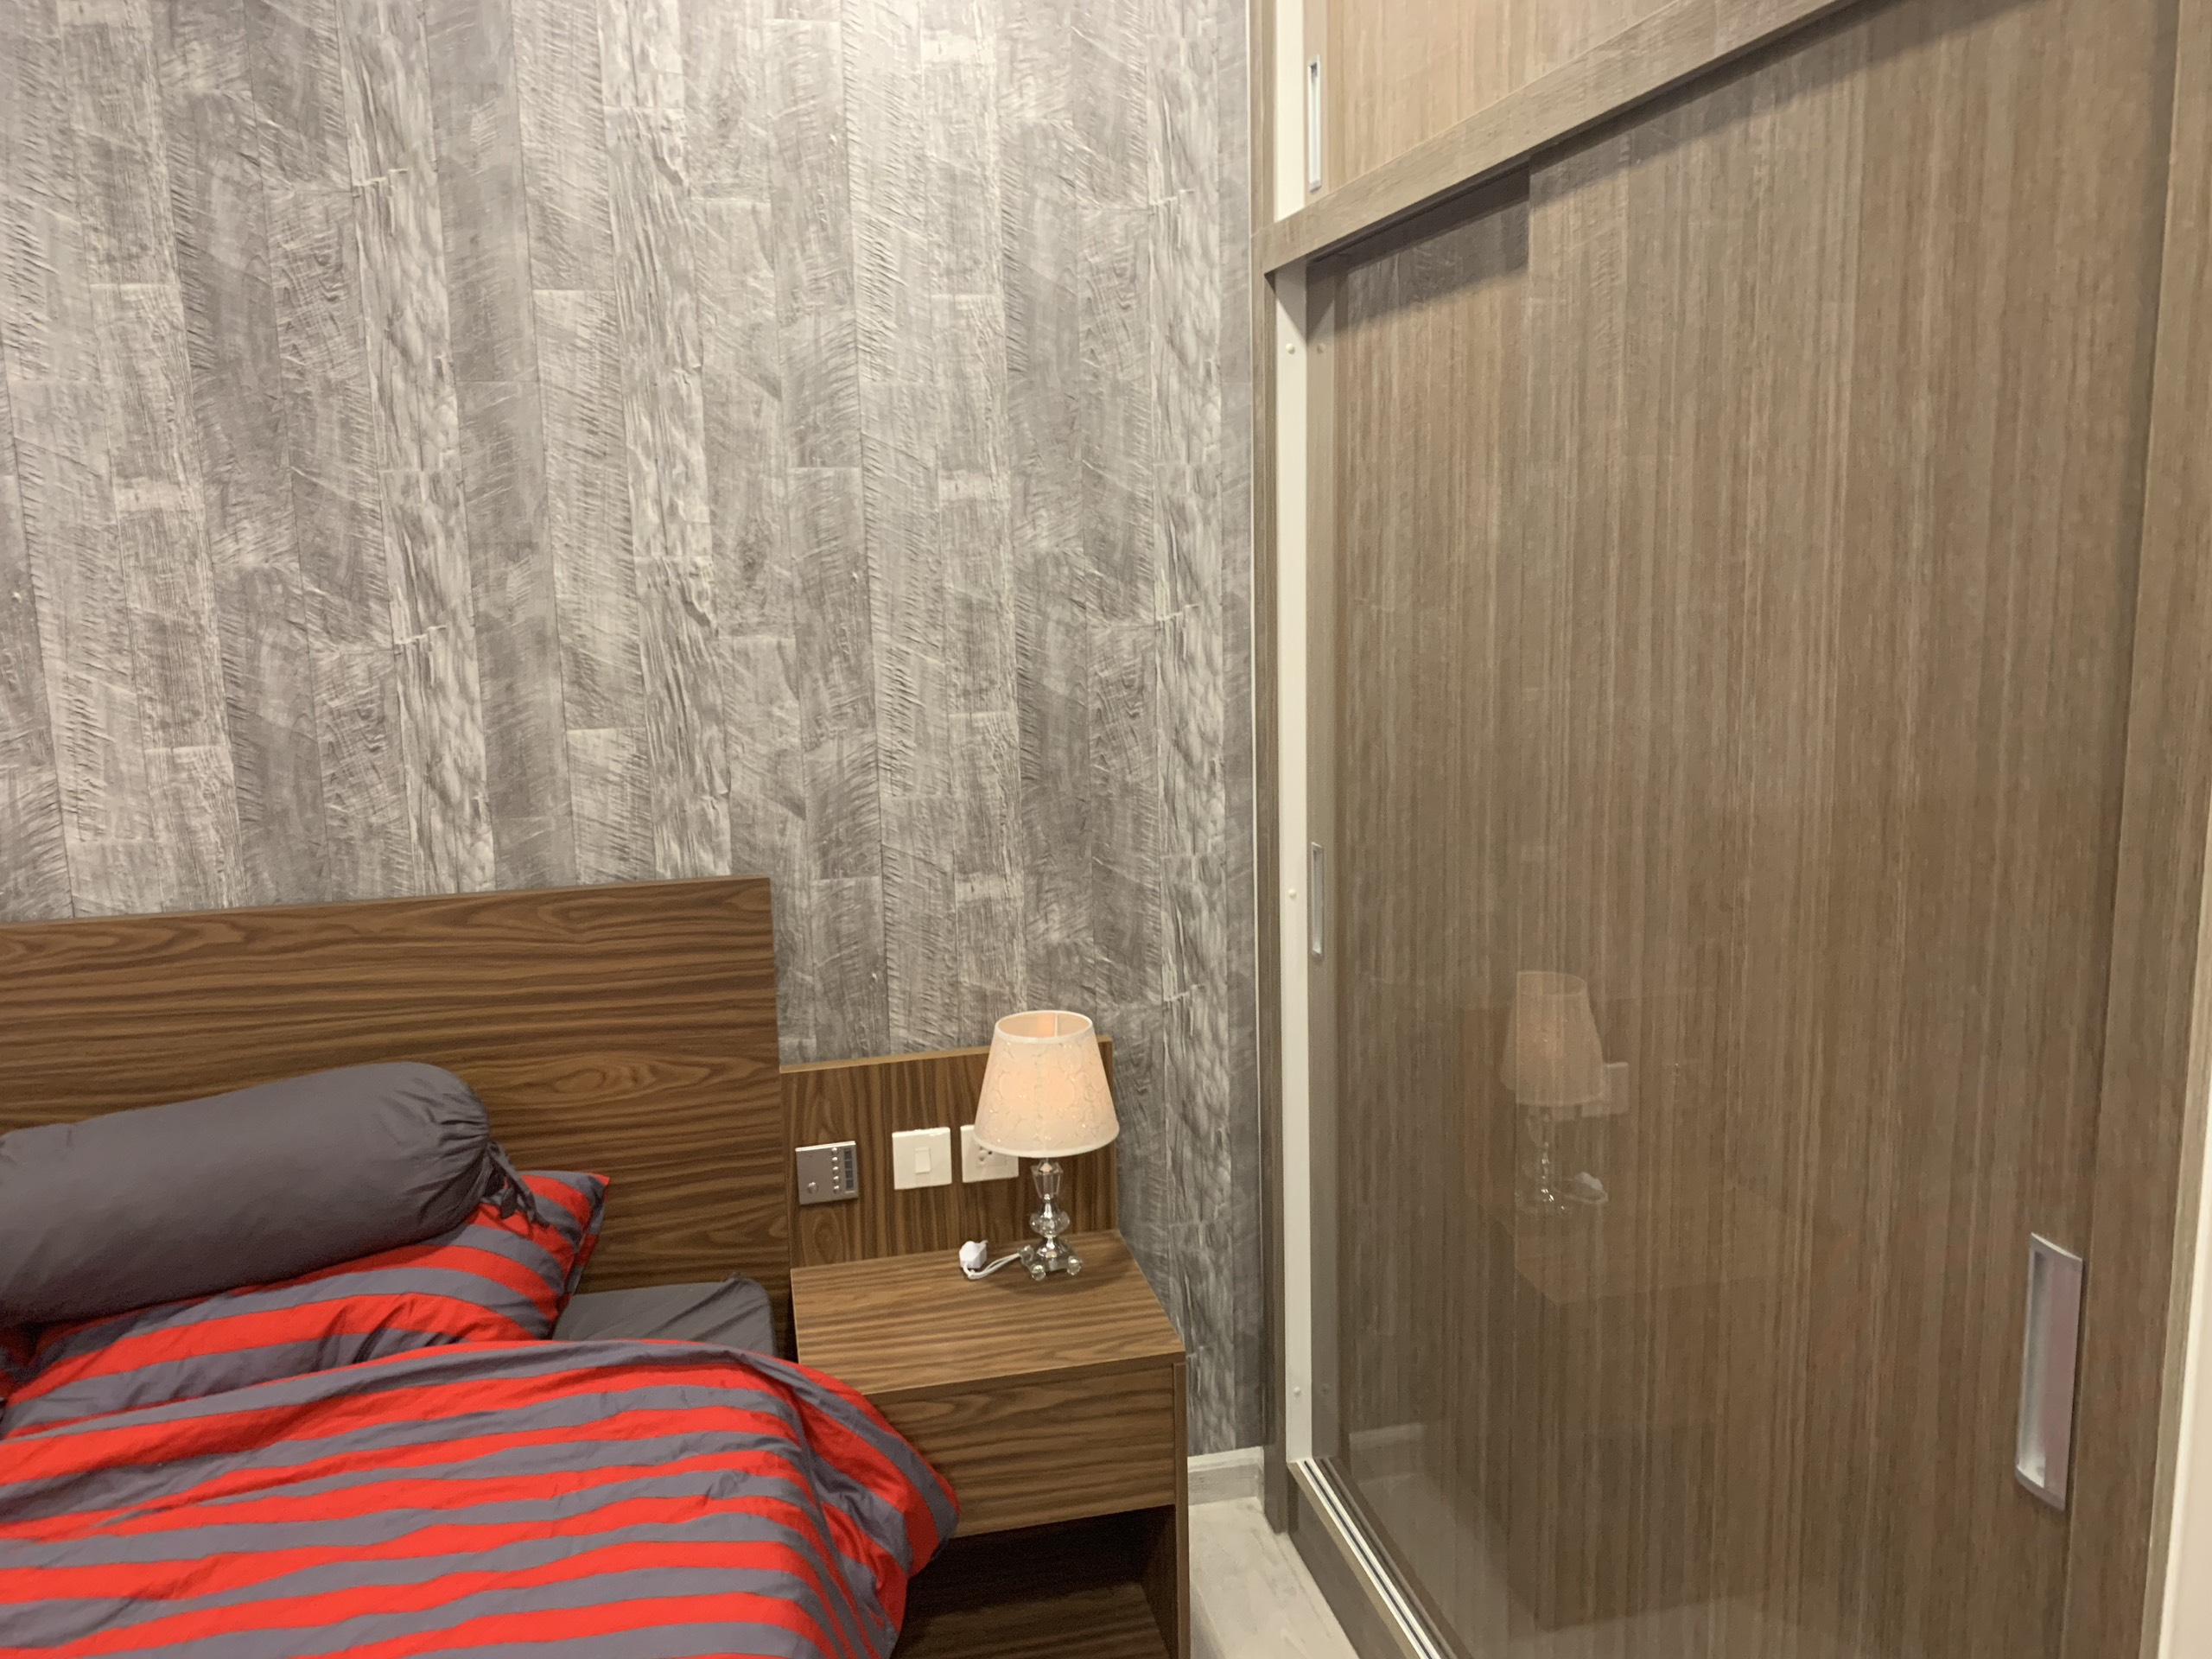 vinhomes golden river apartment for rent in district 1 hcmc D1022483(19)